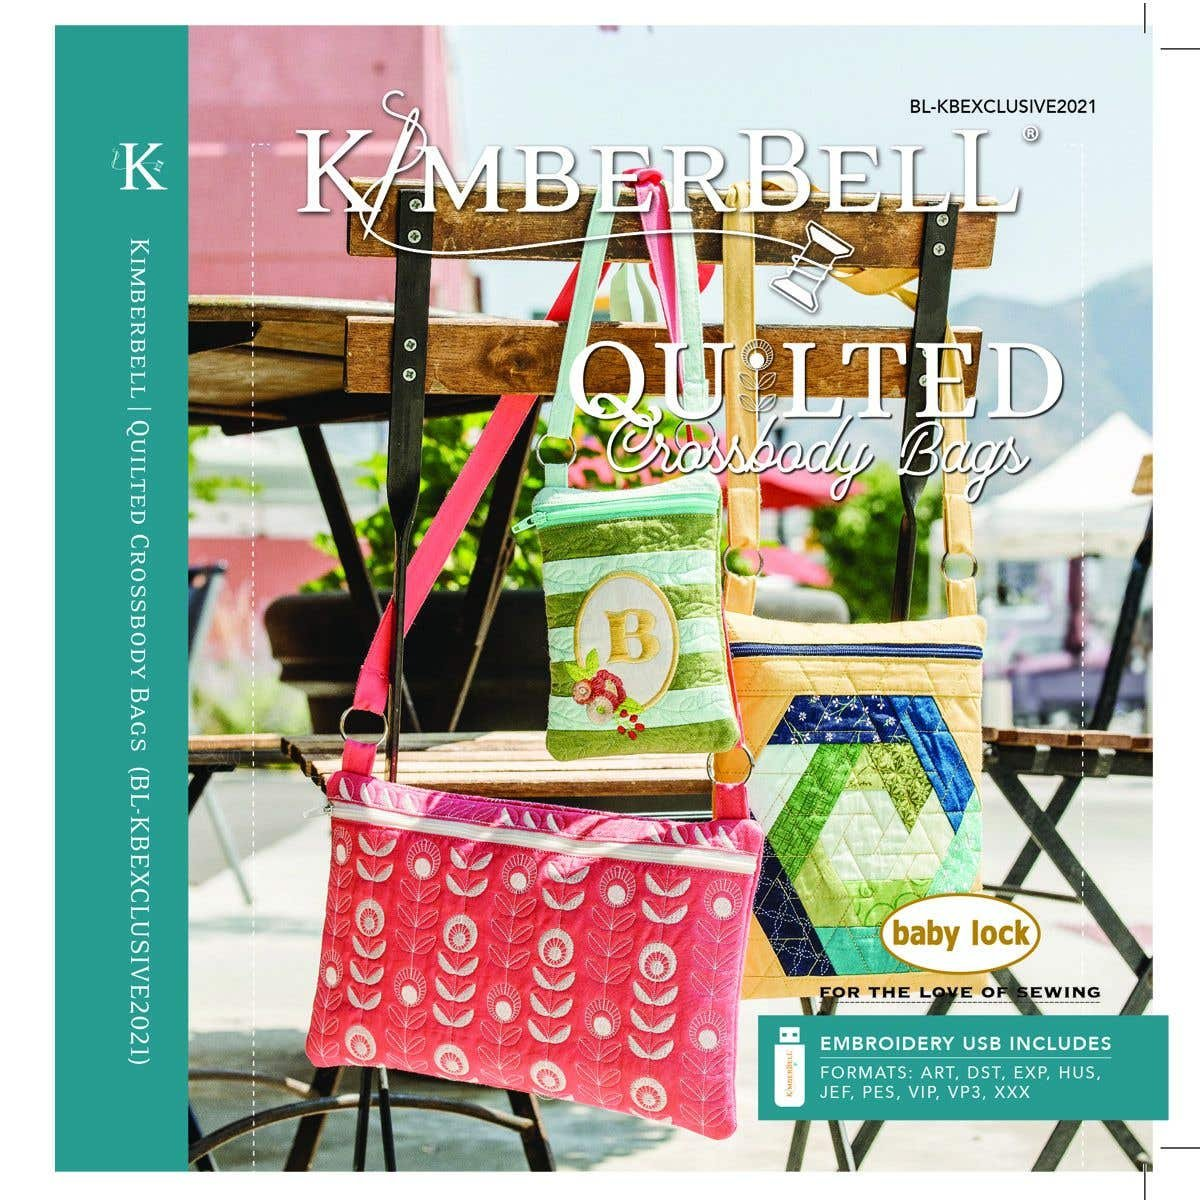 KimberBell BabyLock Exclusive Bag Project 2021